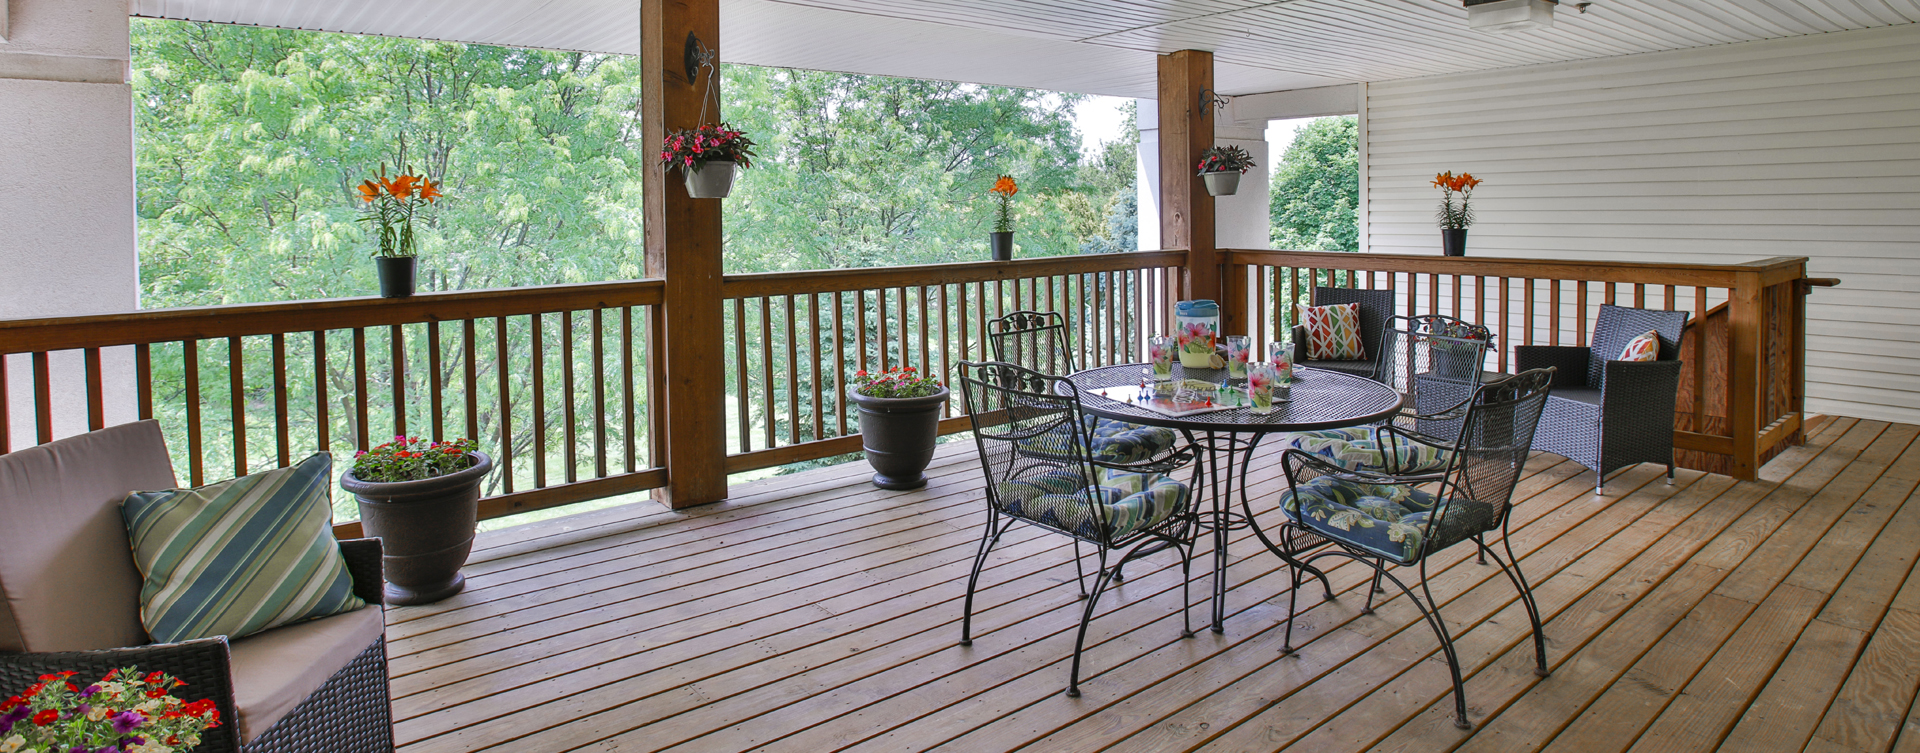 Enjoy the outdoors in a whole new light by stepping onto our back deck at Bickford of Bloomington